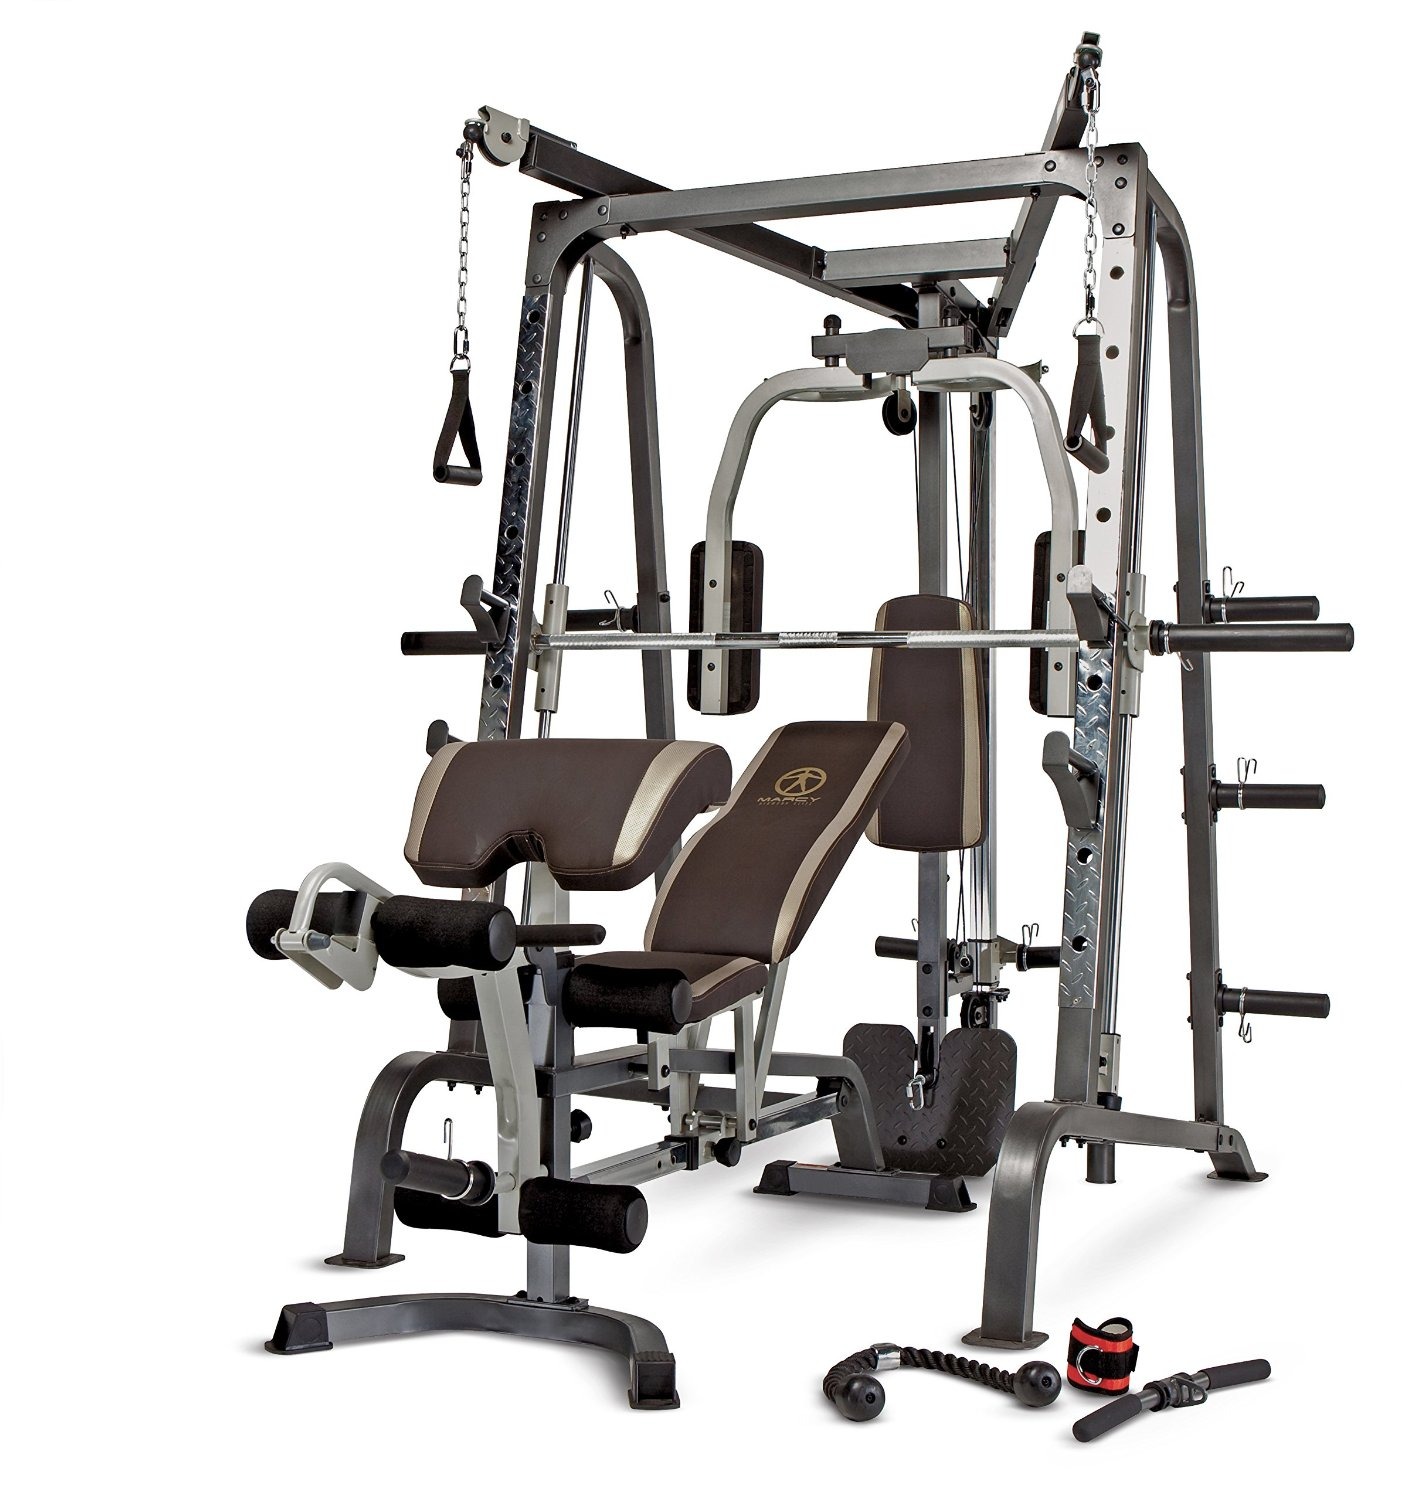 Top 10 Home Gym Equipment Reviews — Your Best Buying Guide in 2020